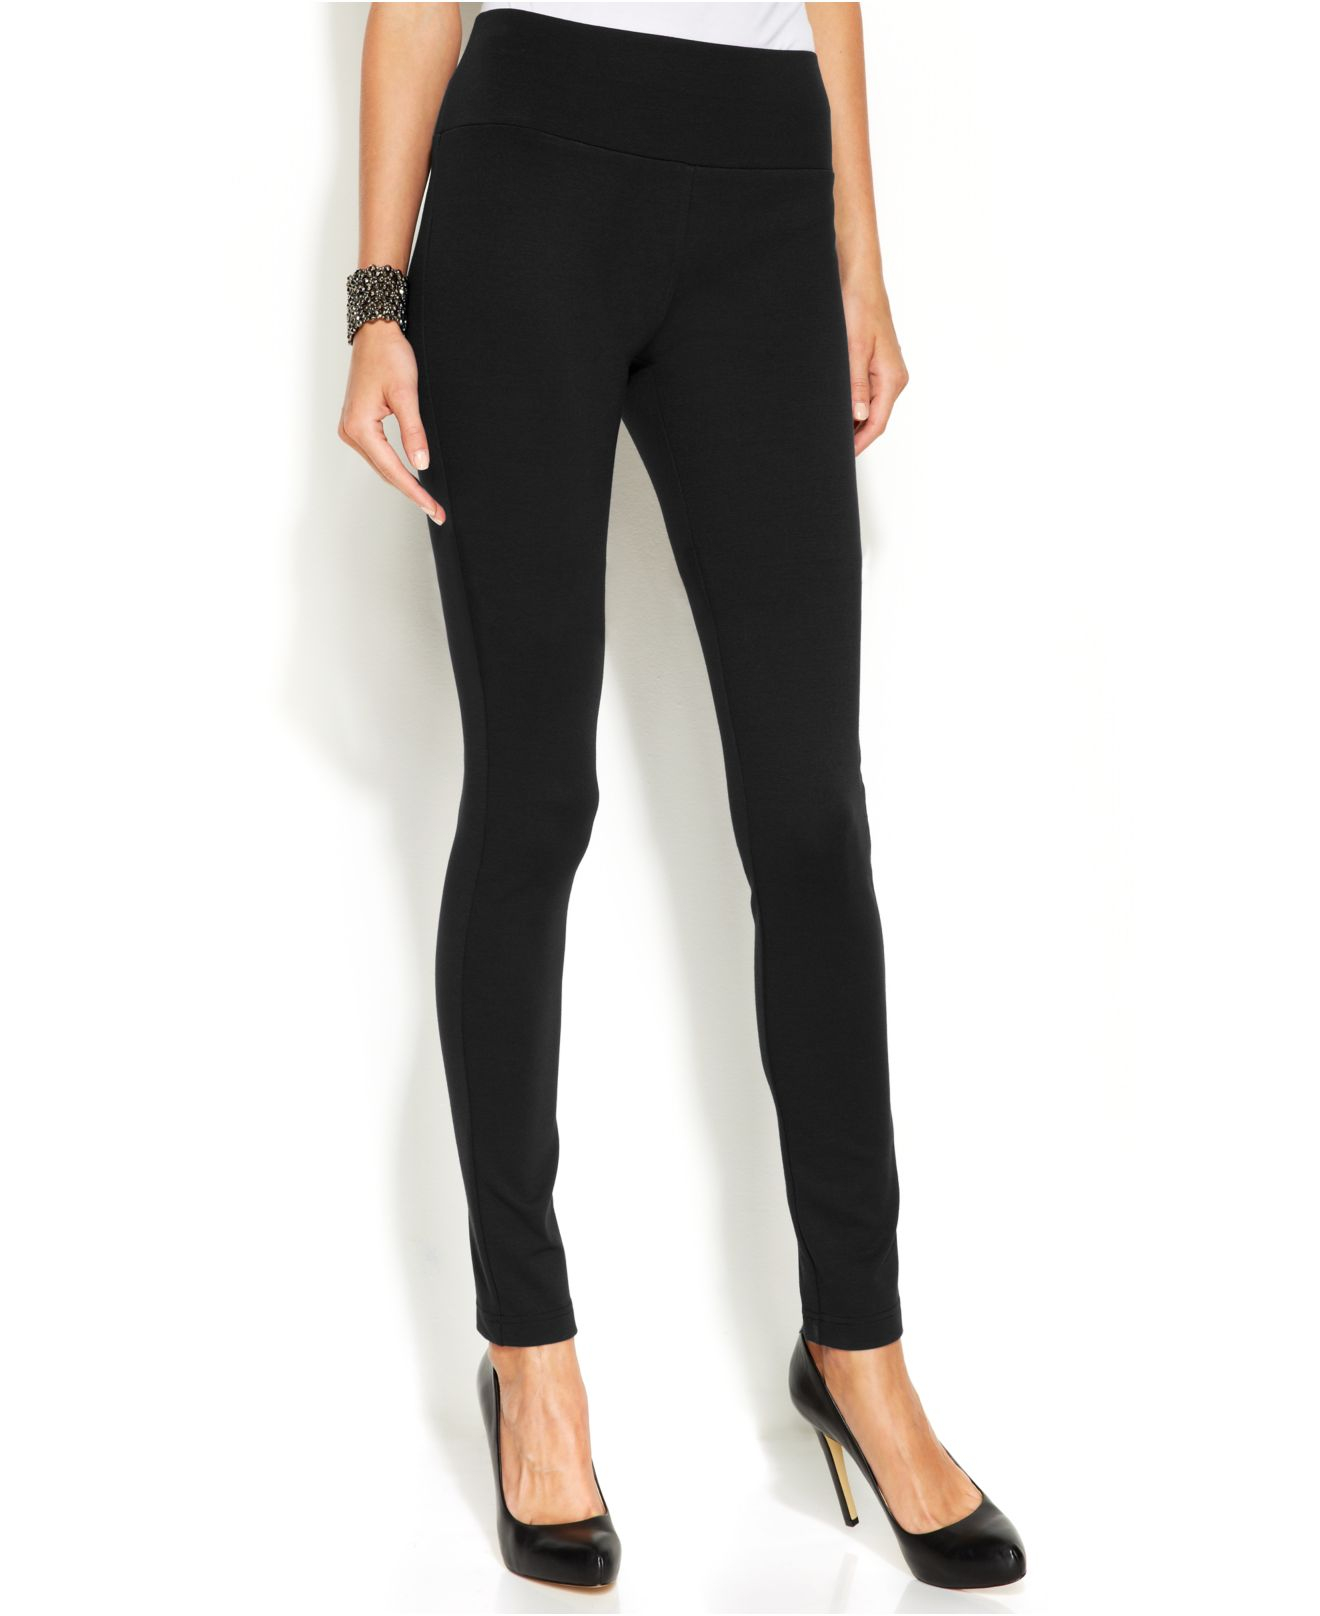 Free shipping on skinny pants for women at private-dev.tk Shop for skinny trousers, ankle pants, sweatpants and more in the latest colors and prints. Enjoy free shipping and returns.